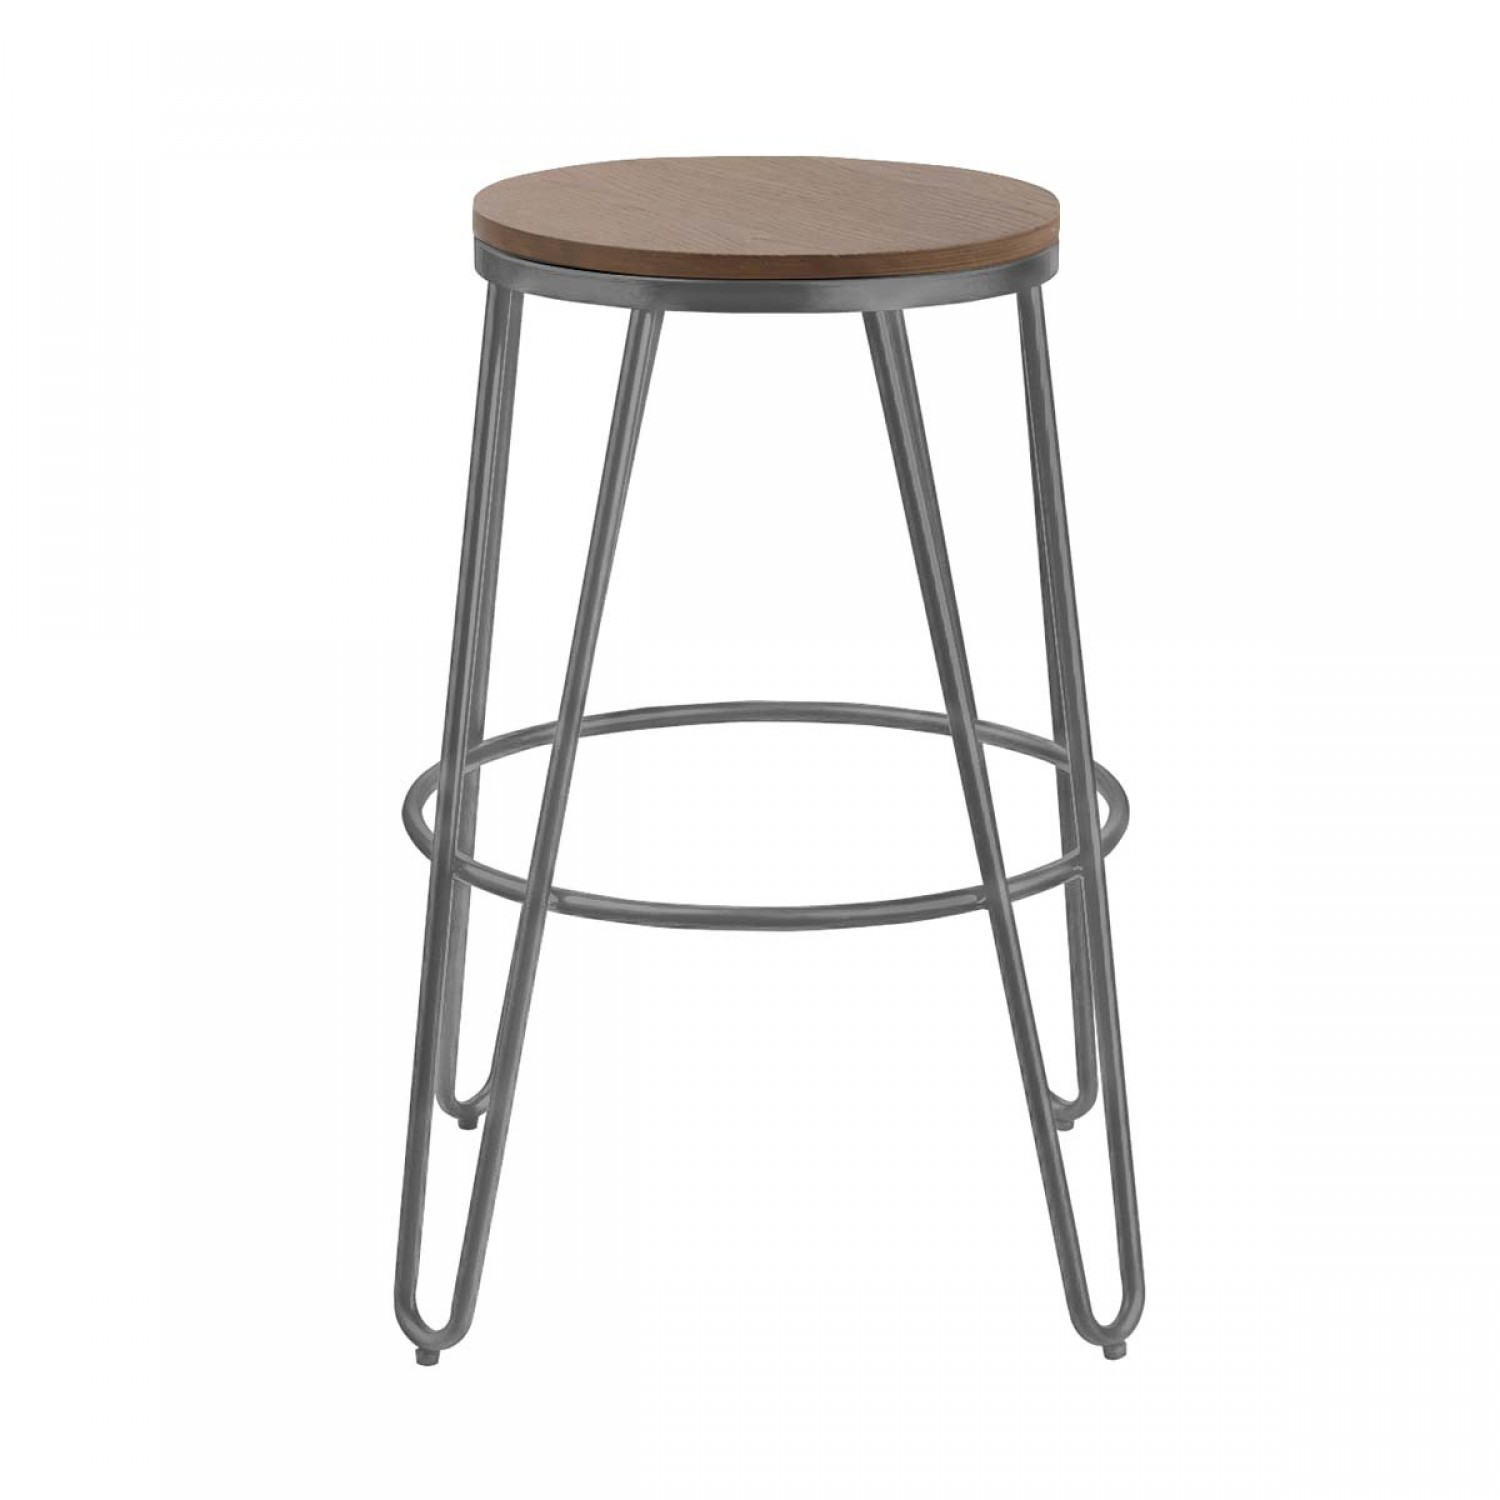 tabouret de bar loft bois et m tal lot de 2 koya design. Black Bedroom Furniture Sets. Home Design Ideas